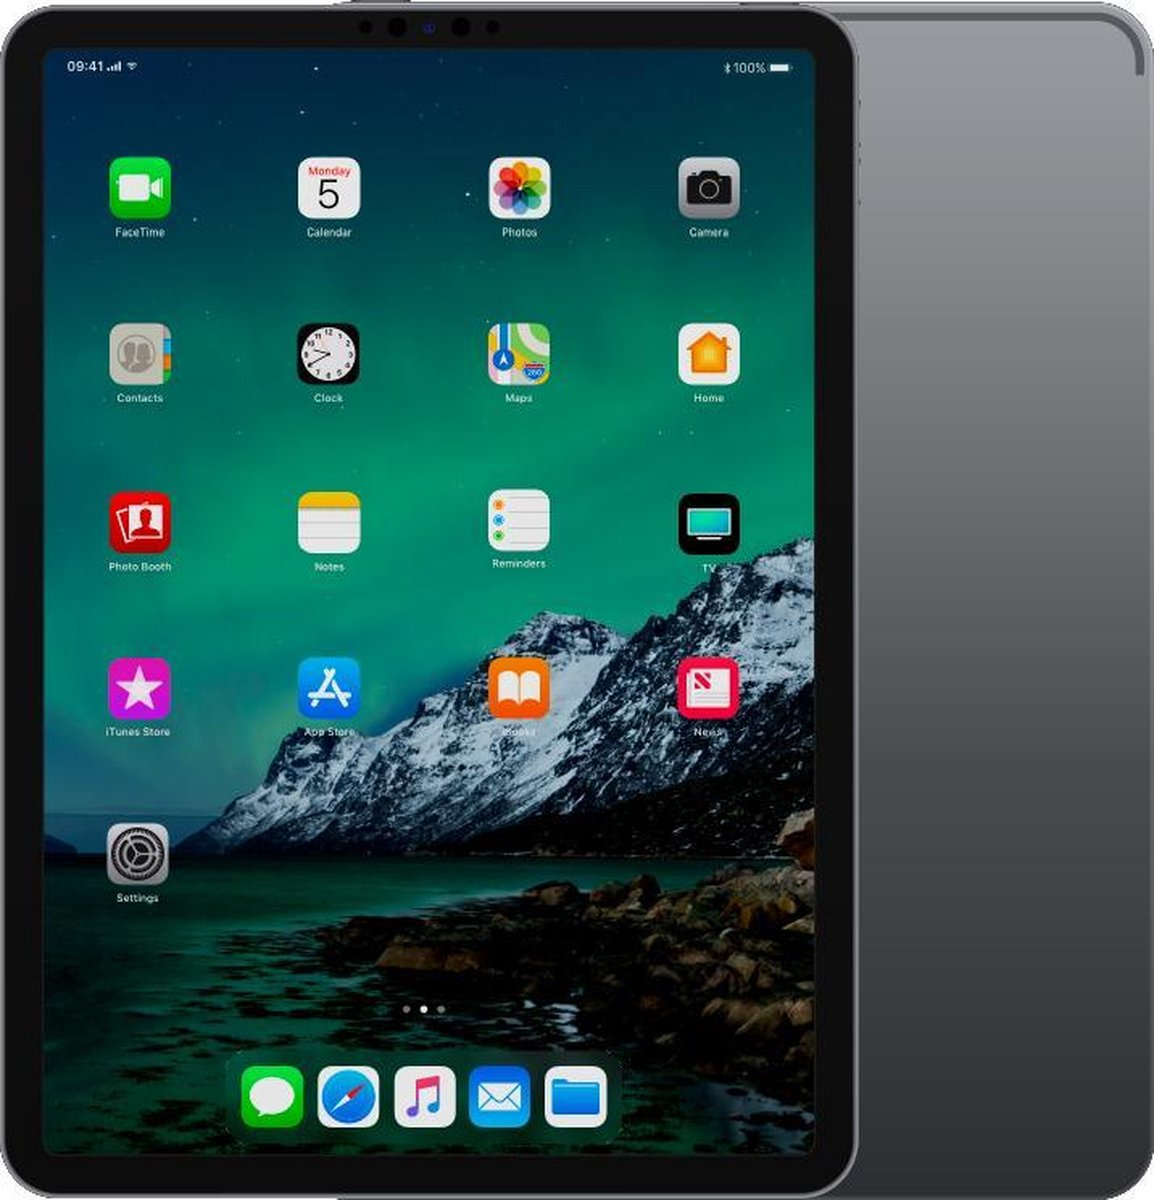 Apple iPad Pro 3 12.9 inch - 64GB - Wi-Fi + 4G - Space Gray - A-grade